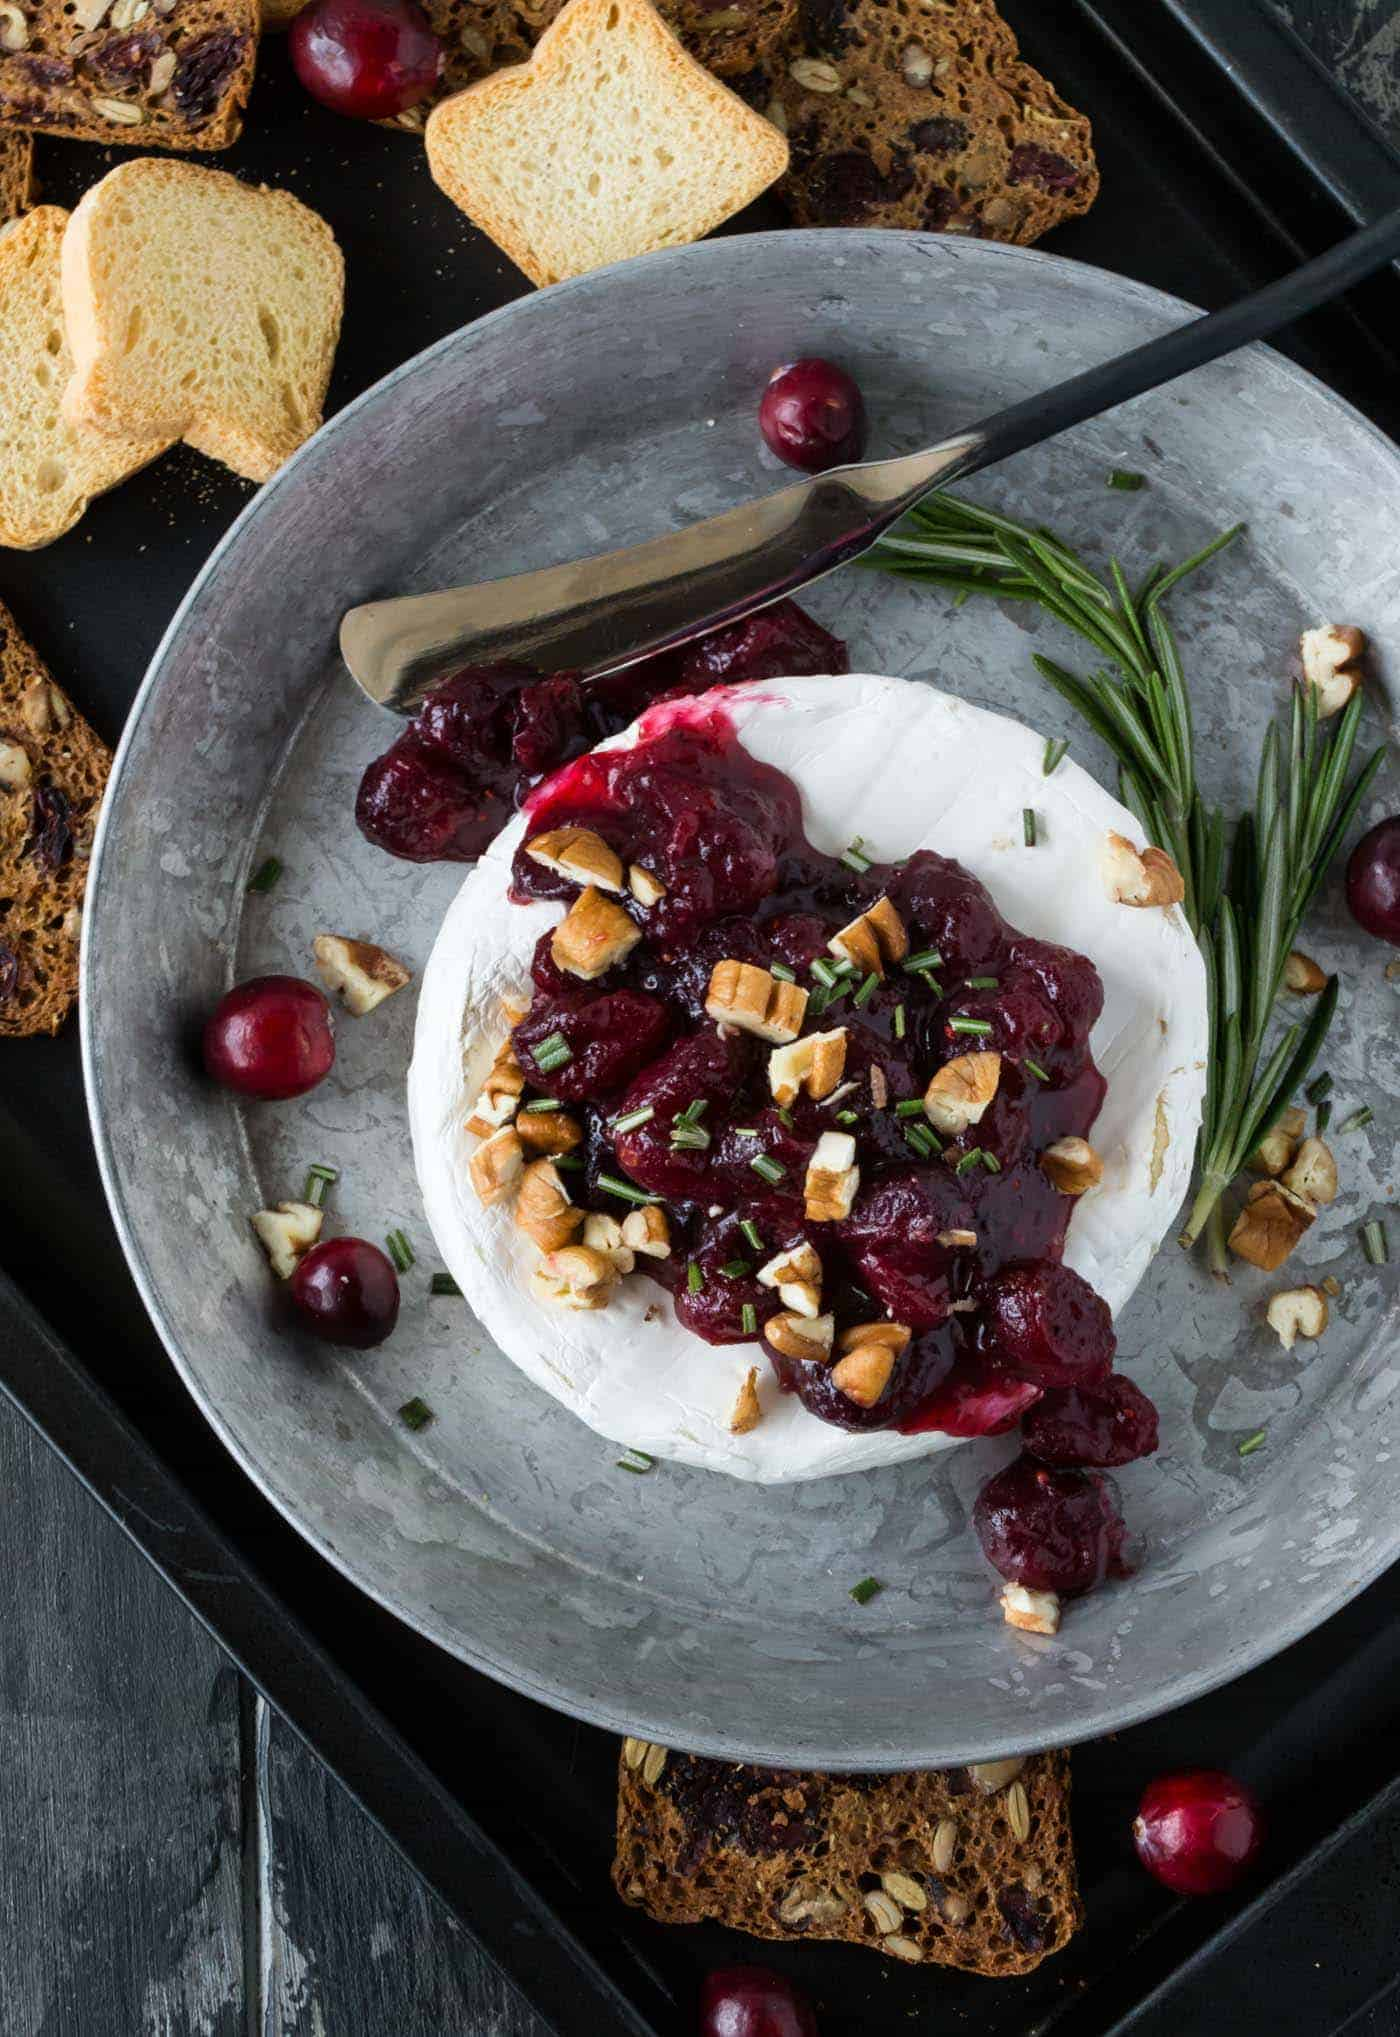 Brie topped with cranberry compote in a silver tray with crackers.